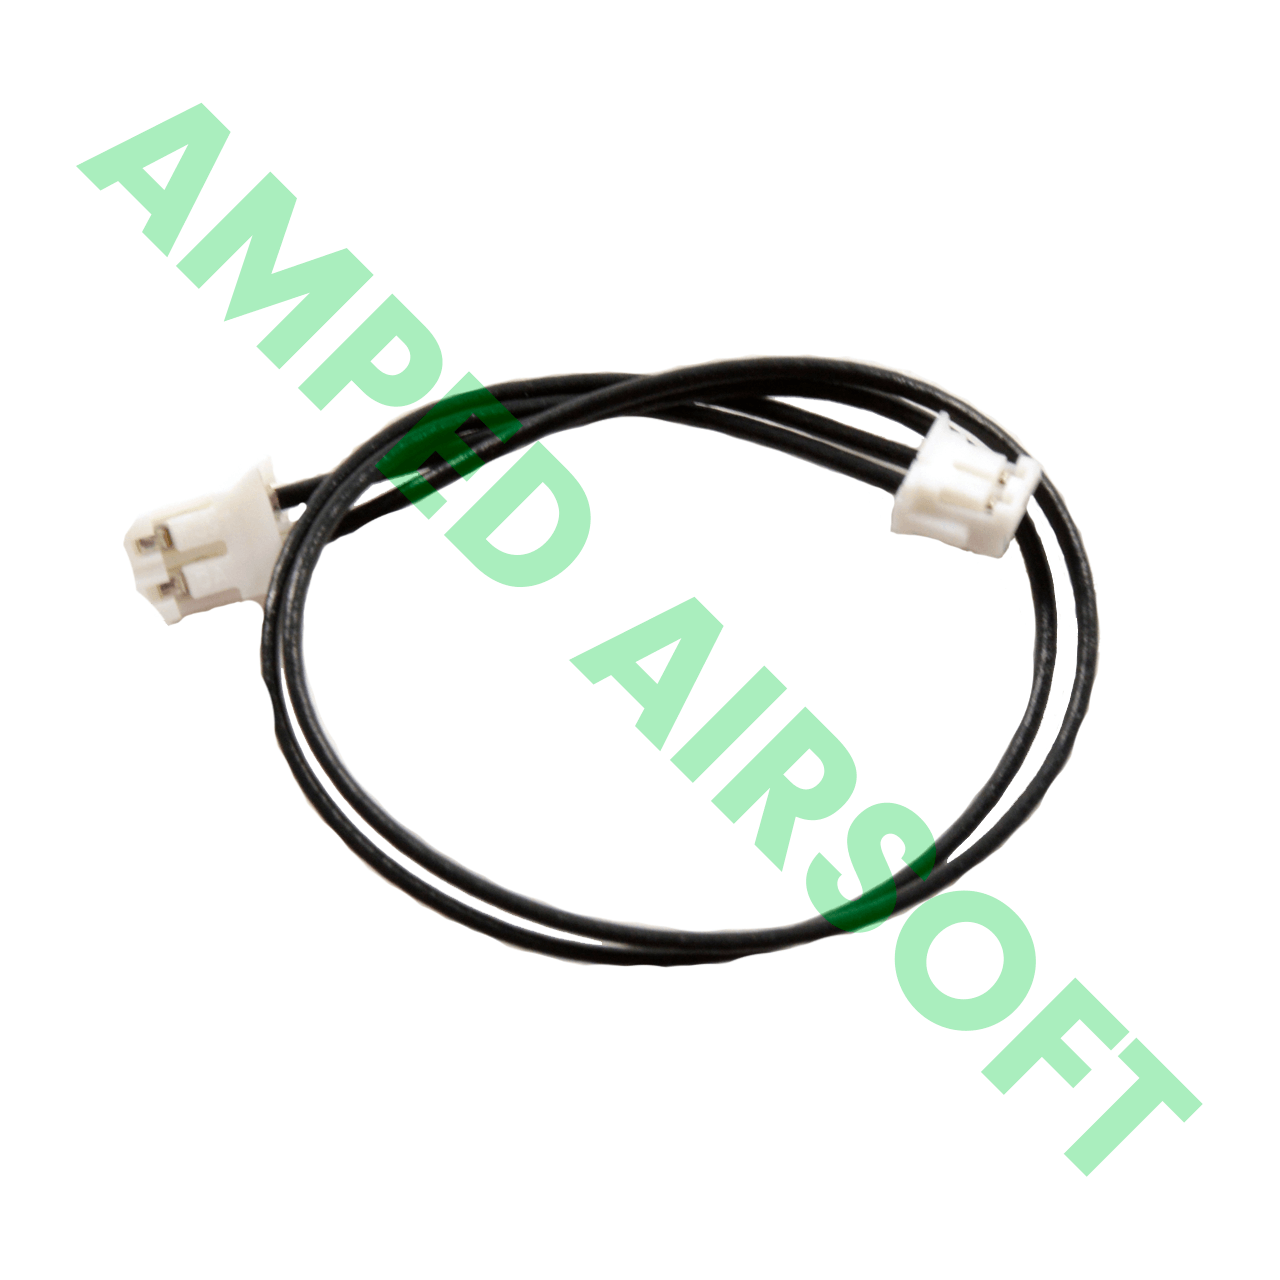 polarstar bullet valve lead 214 309 solenoid__31377.1511064008?c=2 polarstar bullet valve solenoid wiring harness for 214 309 f1 wiring harness at crackthecode.co